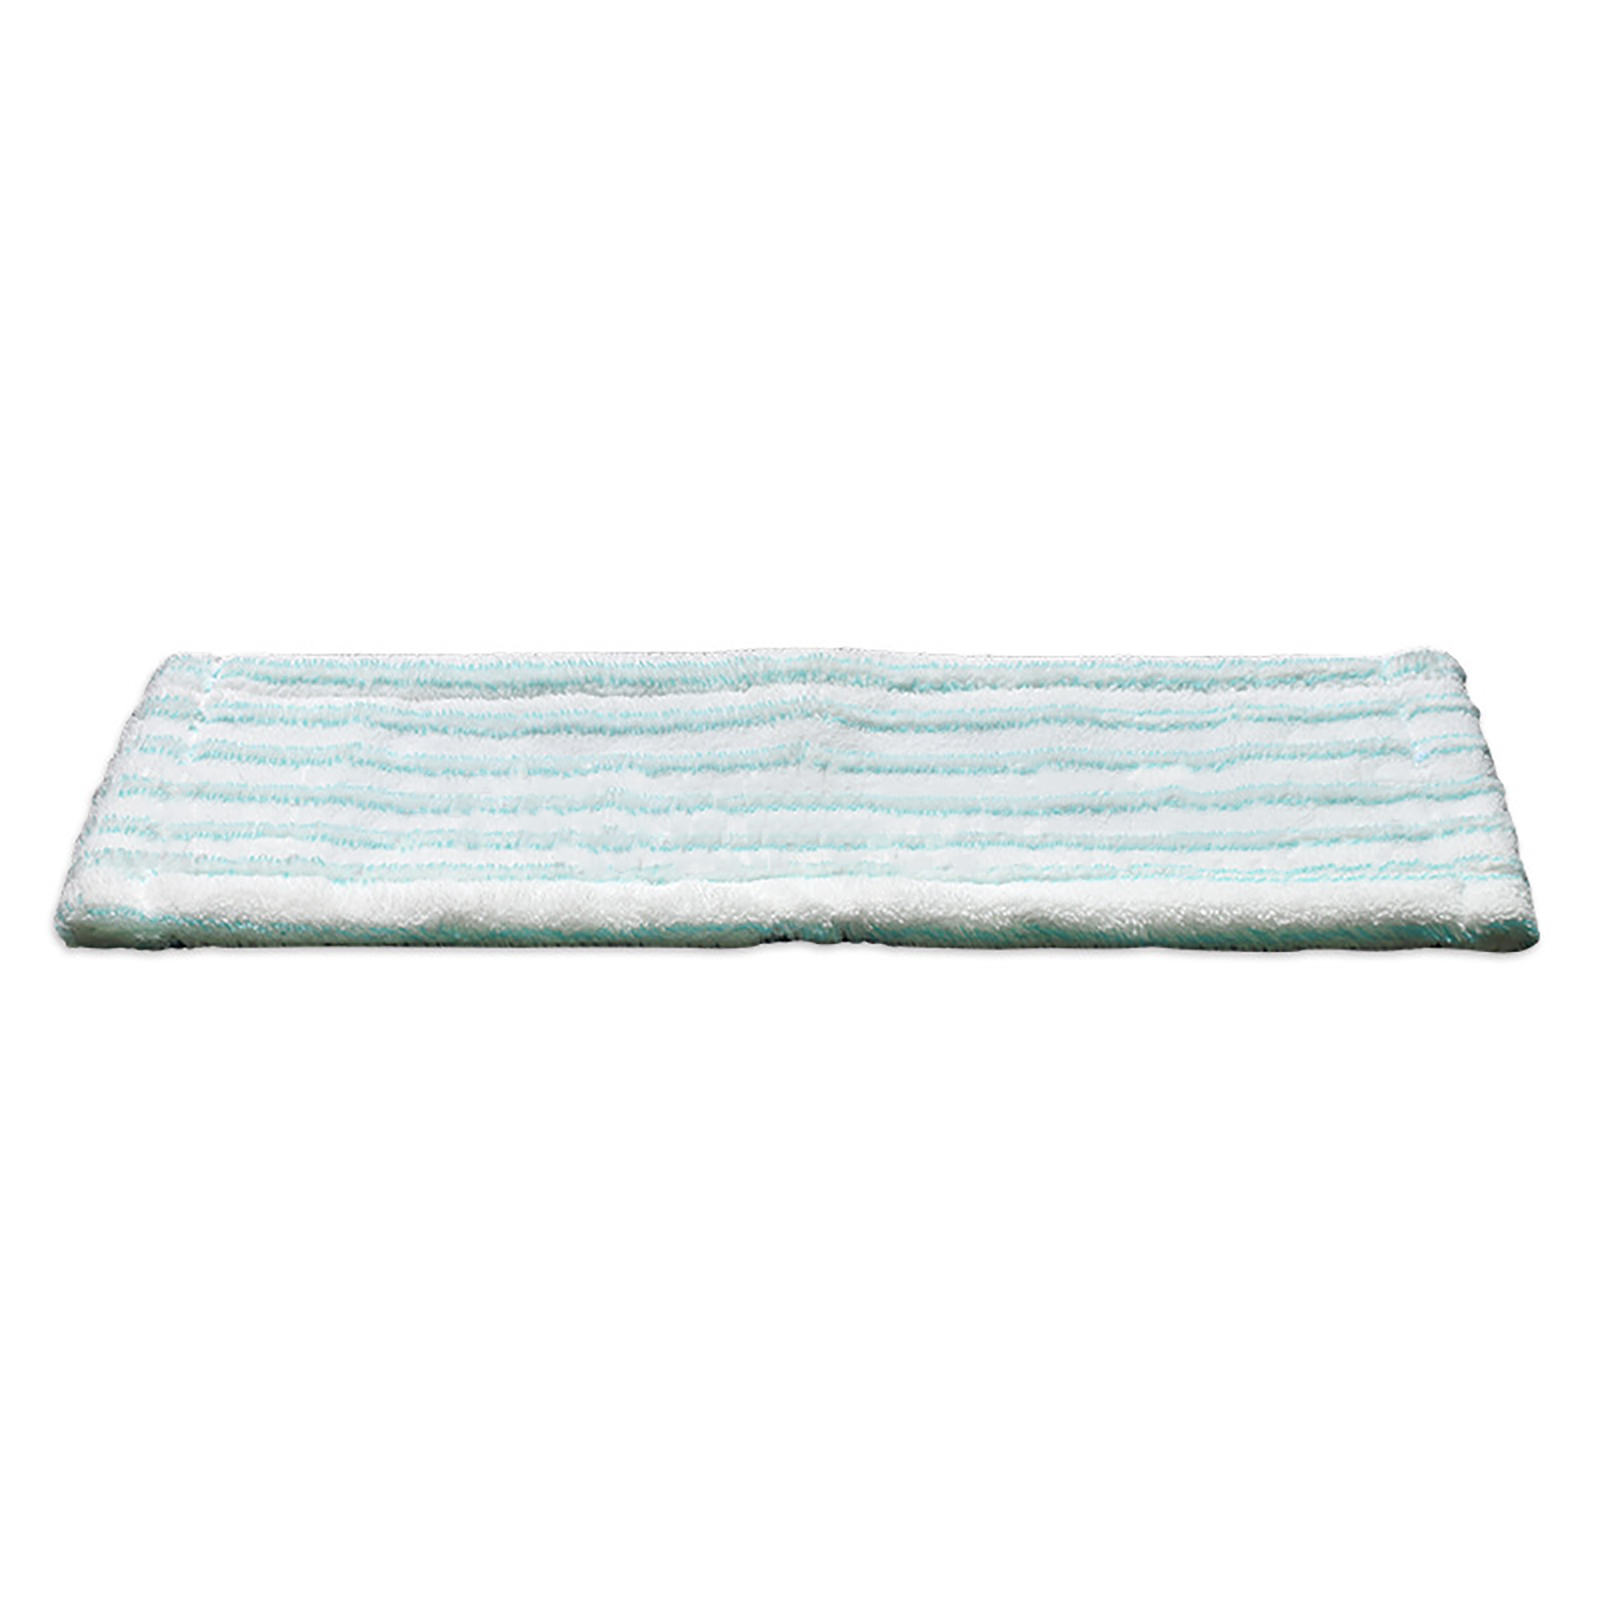 Wiper Mop Cover Cleaning Pad Cleaning Cloth Replacement For Leifheit Profi XL Floor Wiper Spare Parts